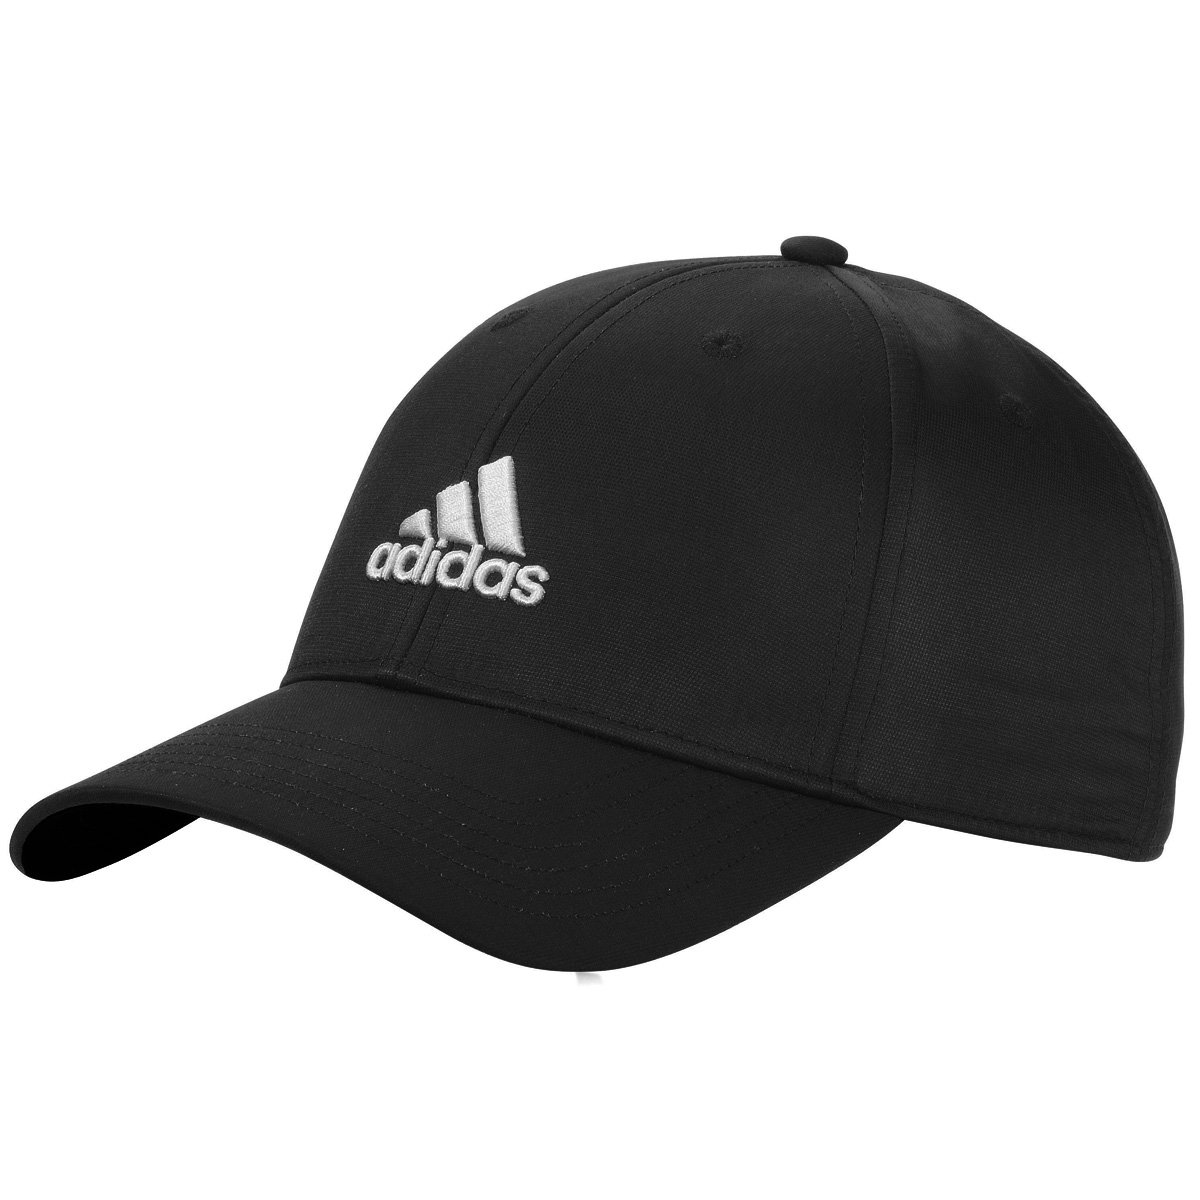 adidas Perfomance Max Golf Touch mens negro: Amazon.es: Deportes y ...